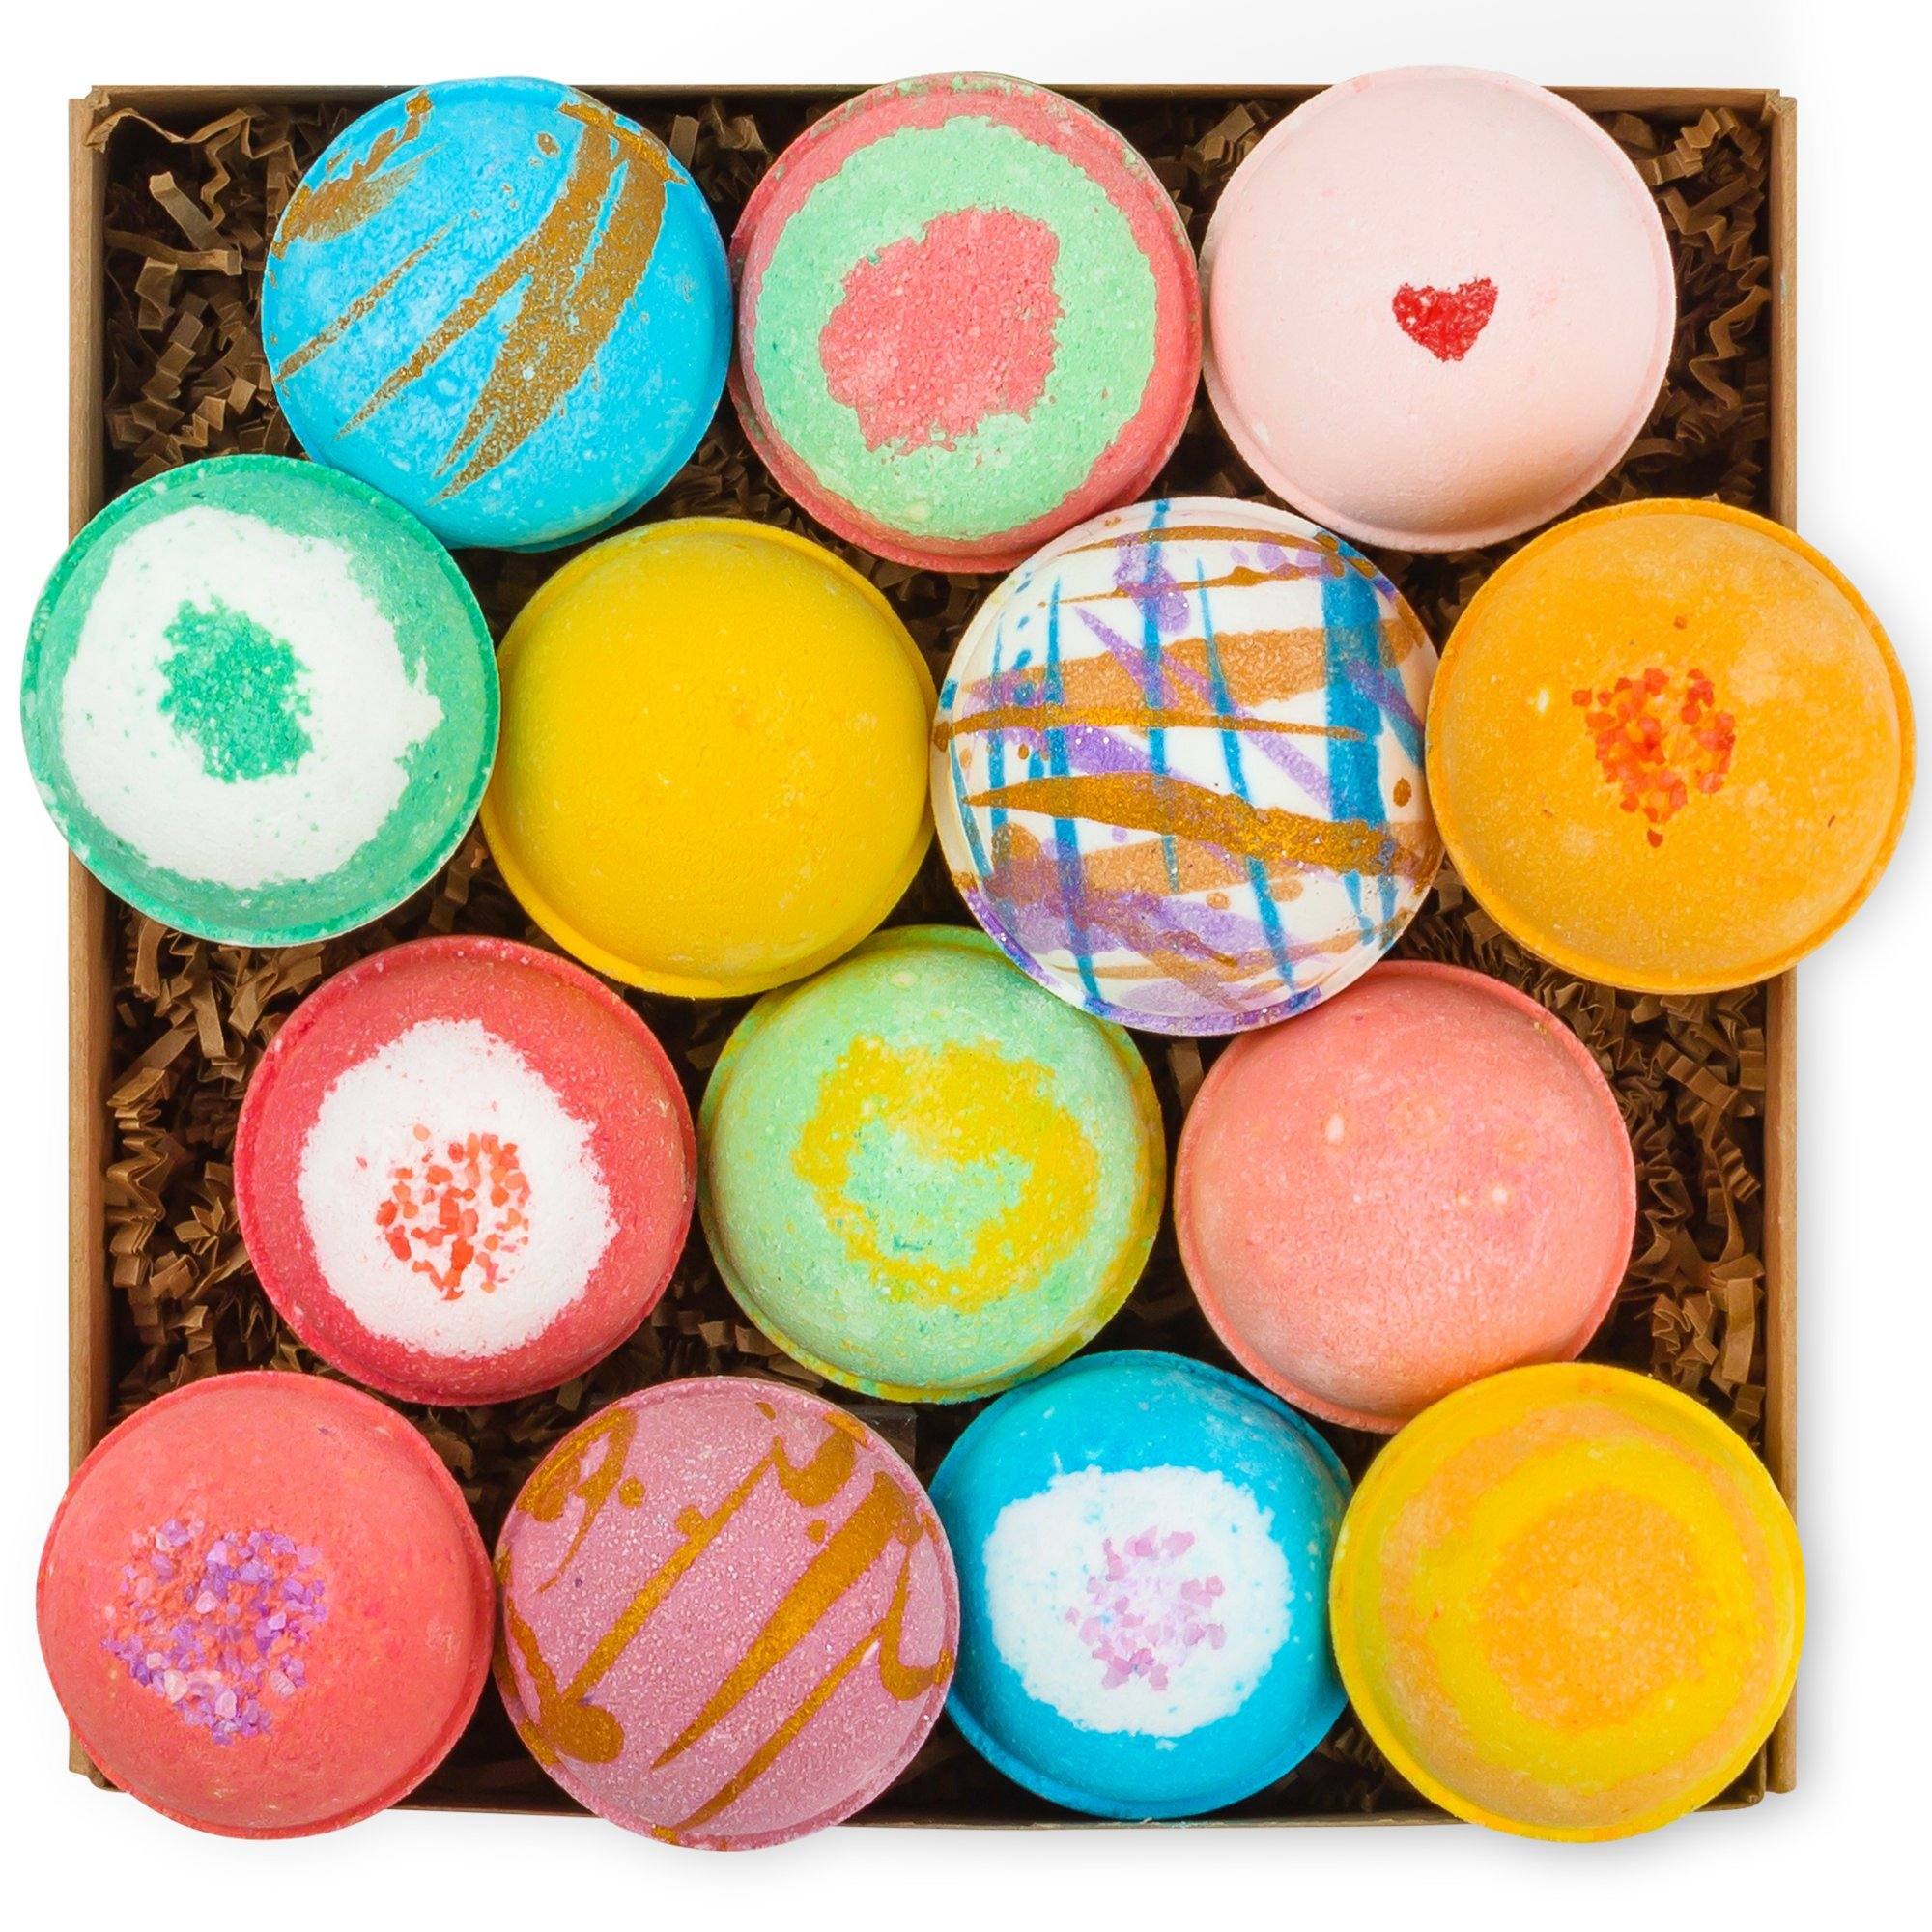 HanZá Bath Bombs - Gift Set Ideas - Gifts For Women, Mom, Girls, Teens, Her - Ultra Lush Spa Fizzies - Gift Ideas - Add to Bath Bubbles, Bath Beads, Bath Pearls & Flakes (14, Multicolored)